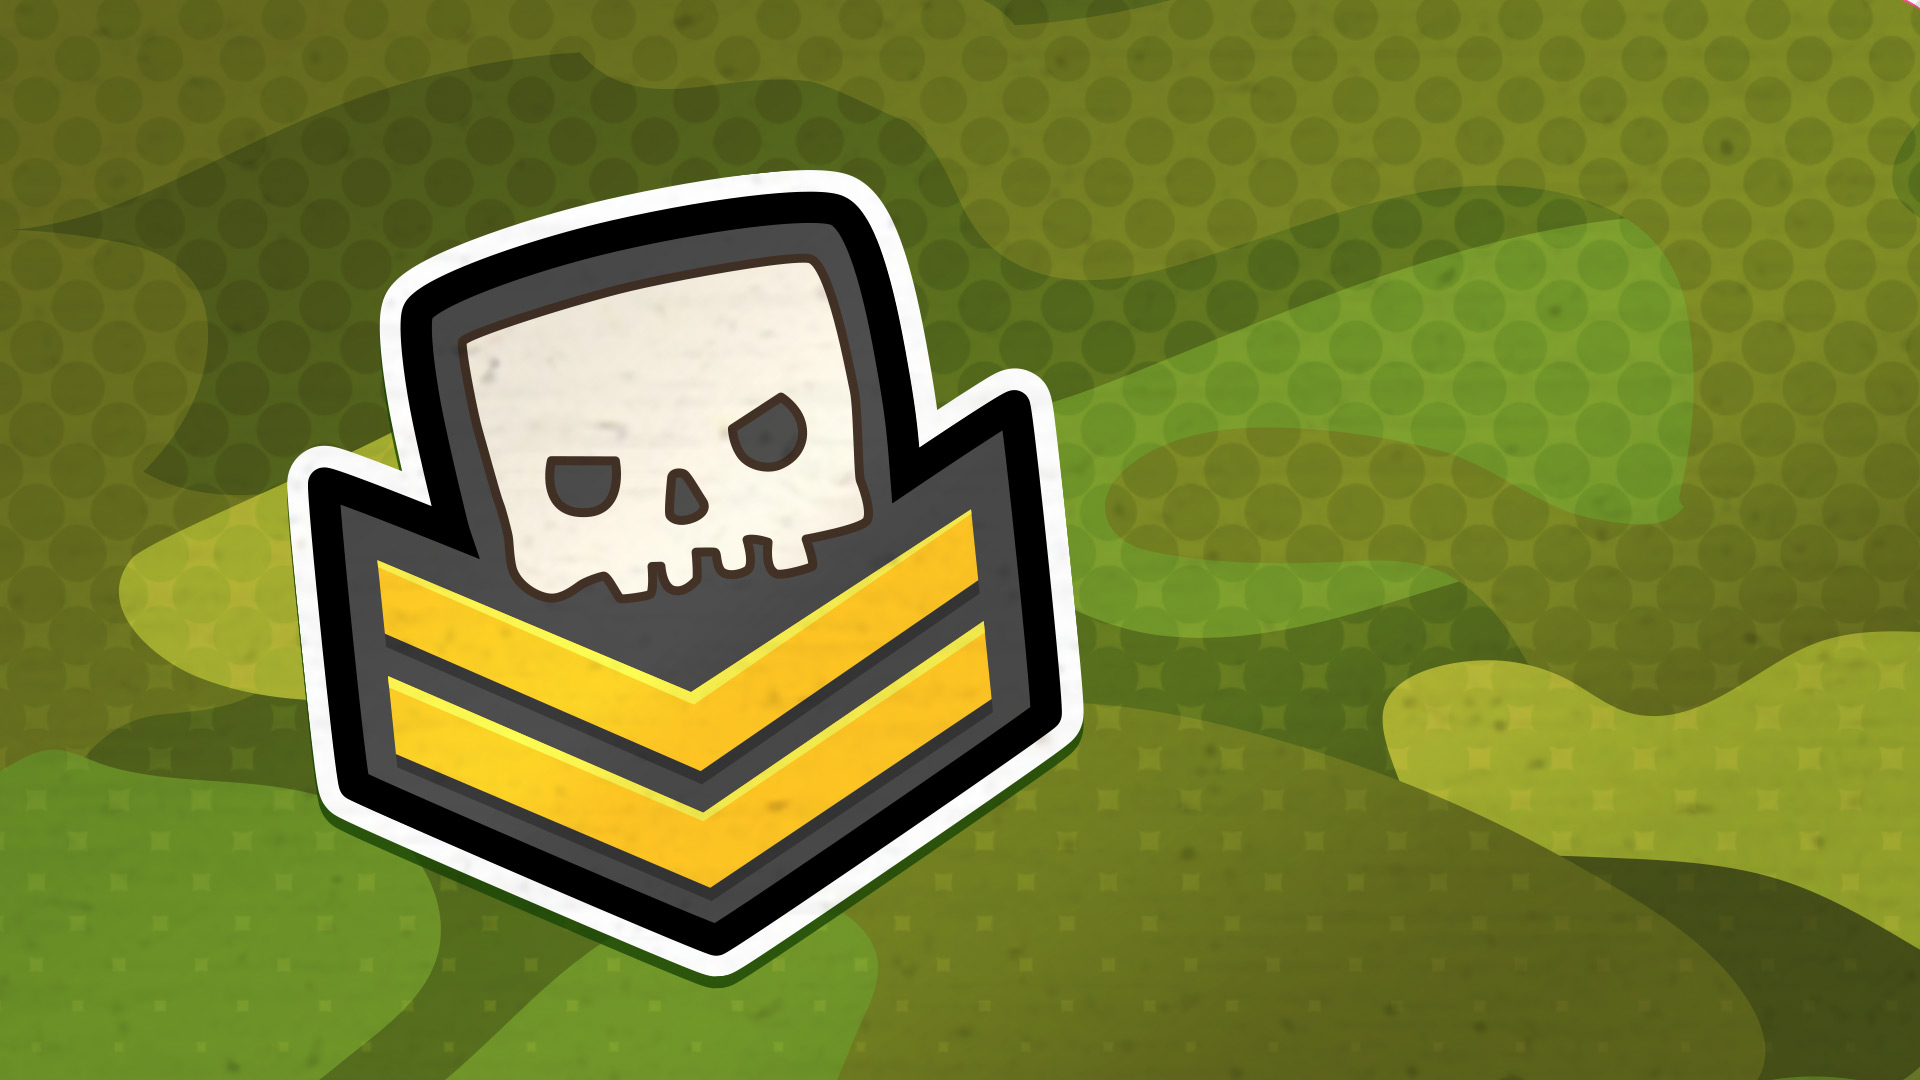 Icon for Corporal